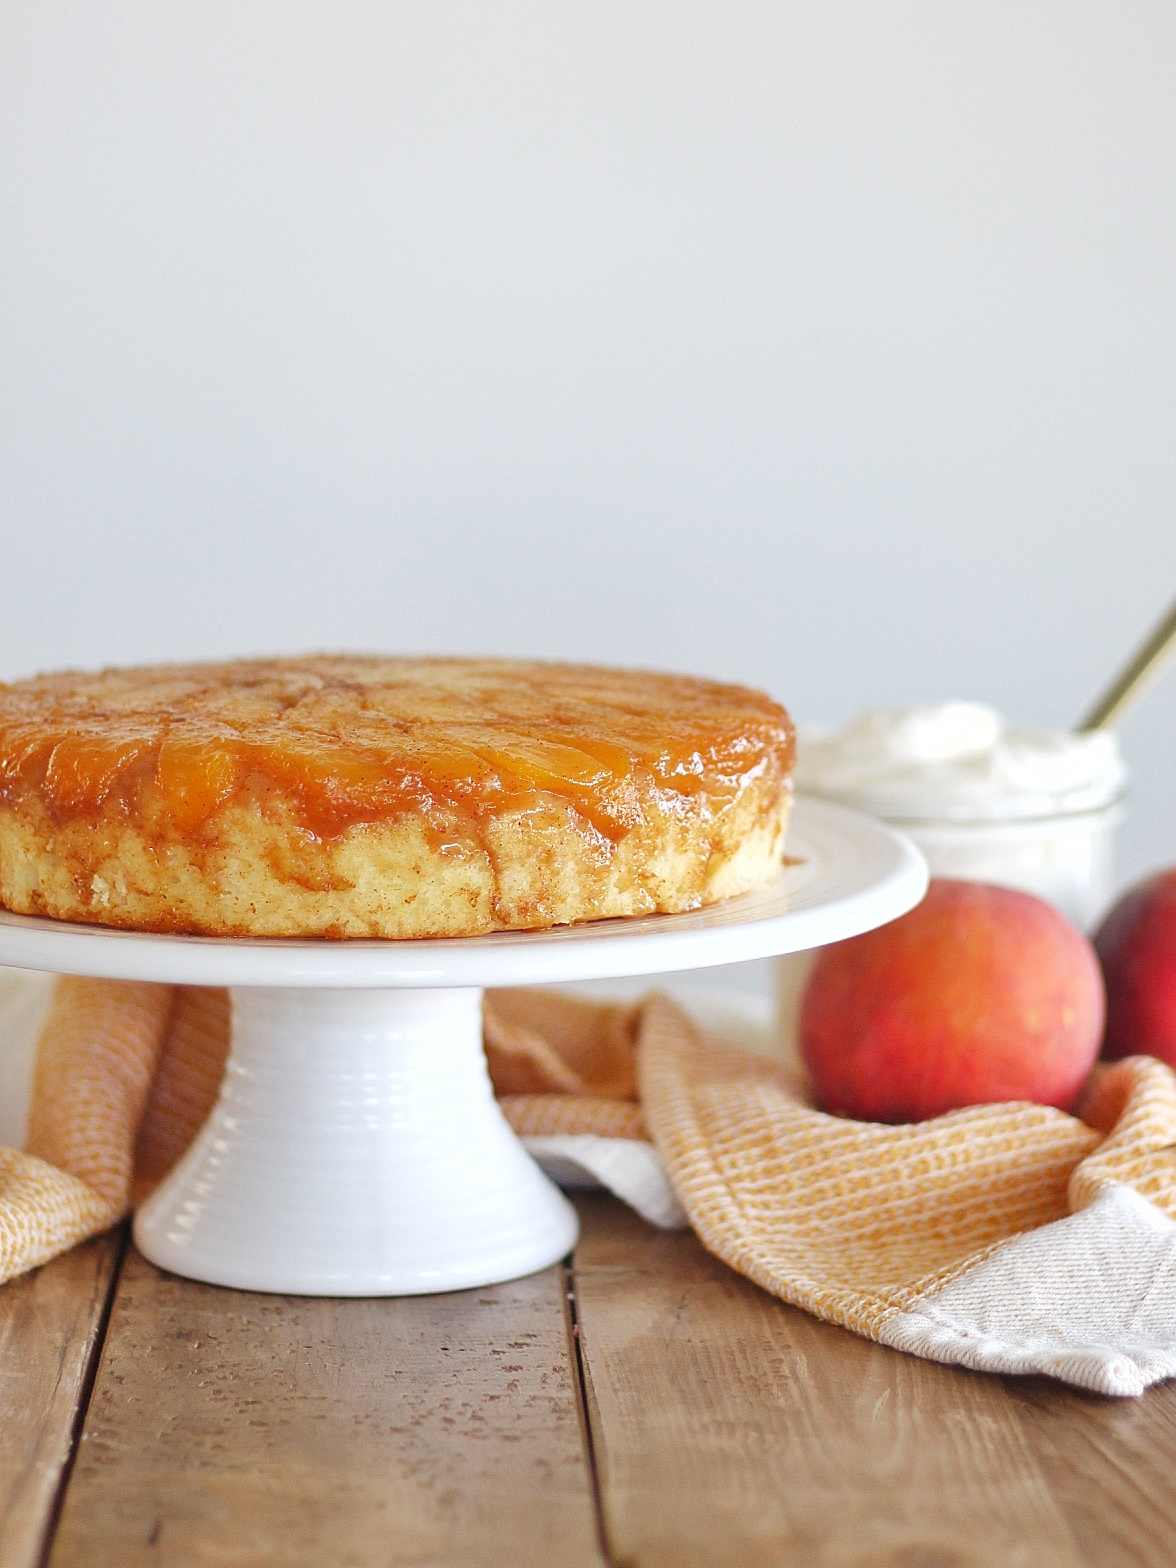 Wrap up summer with this delicious Peach Upside Down Cake.